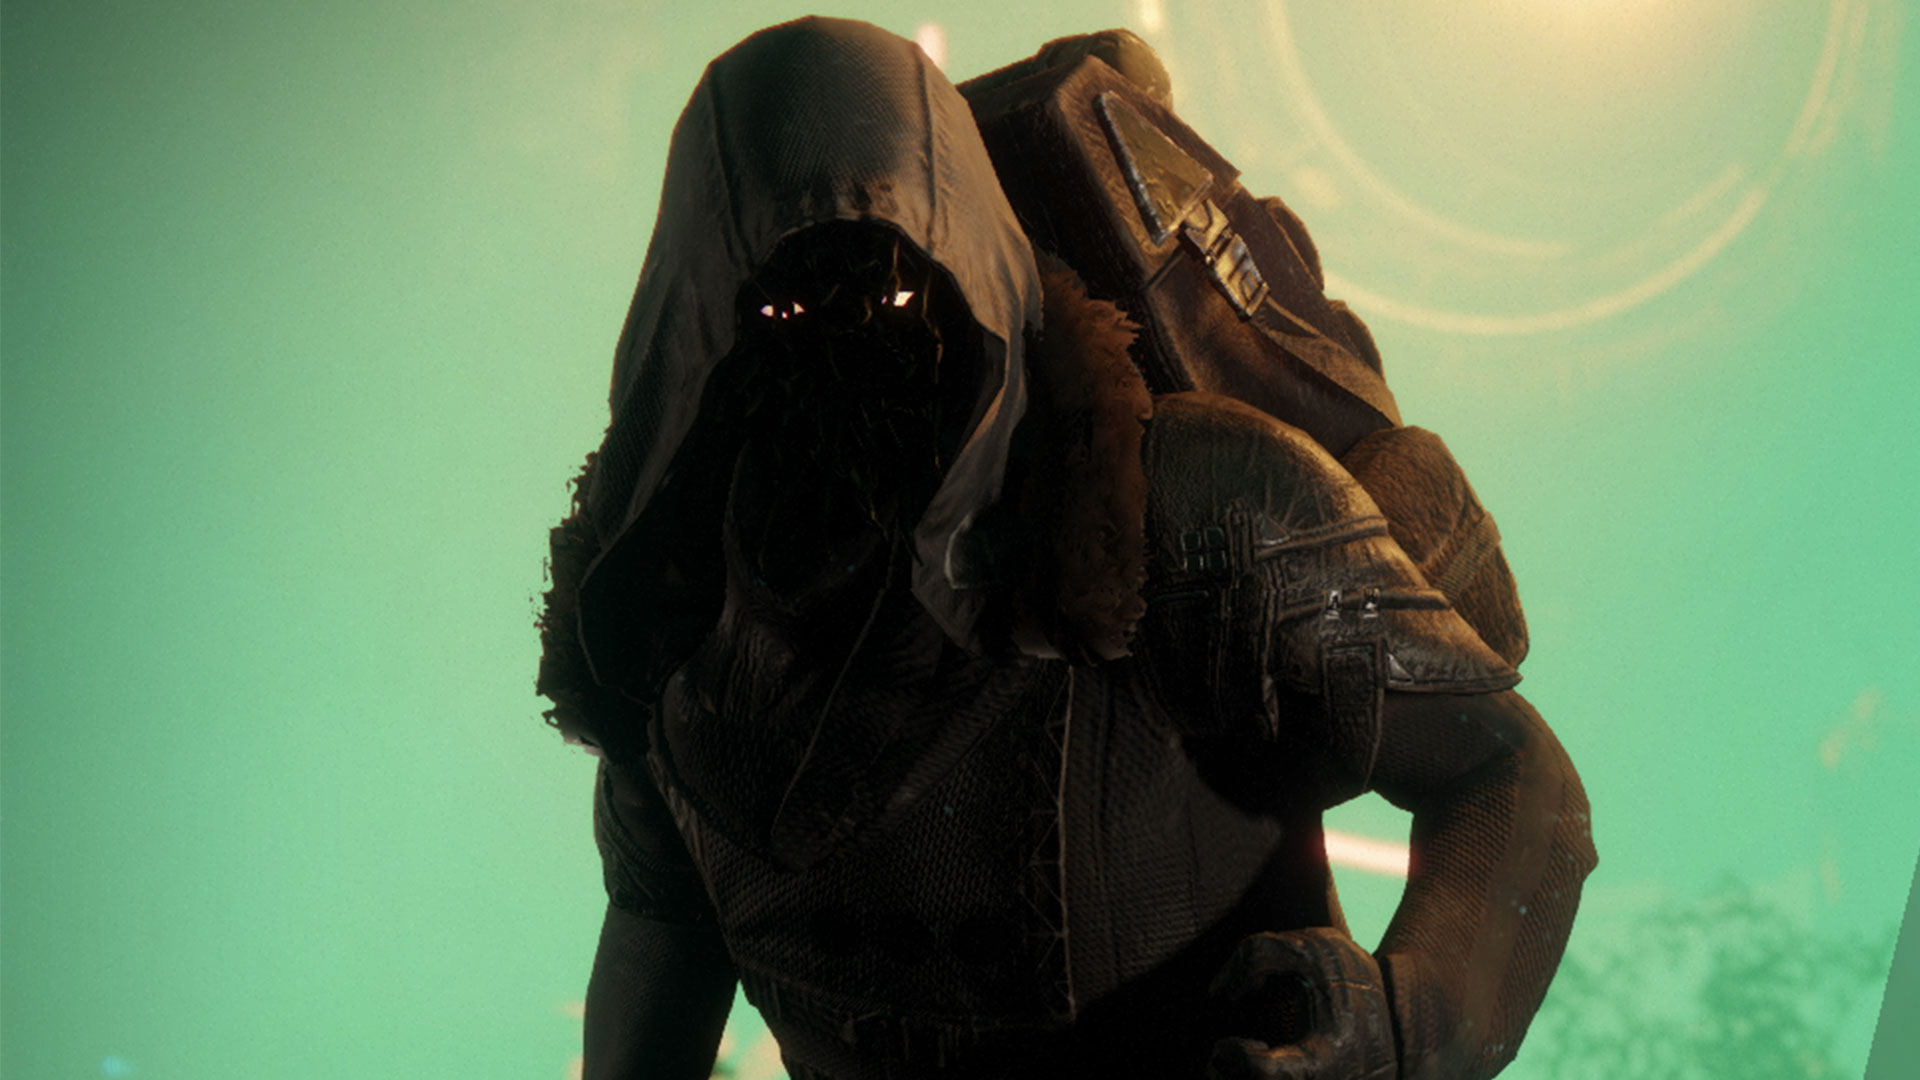 Destiny 2 Xur location and items, May 17-20